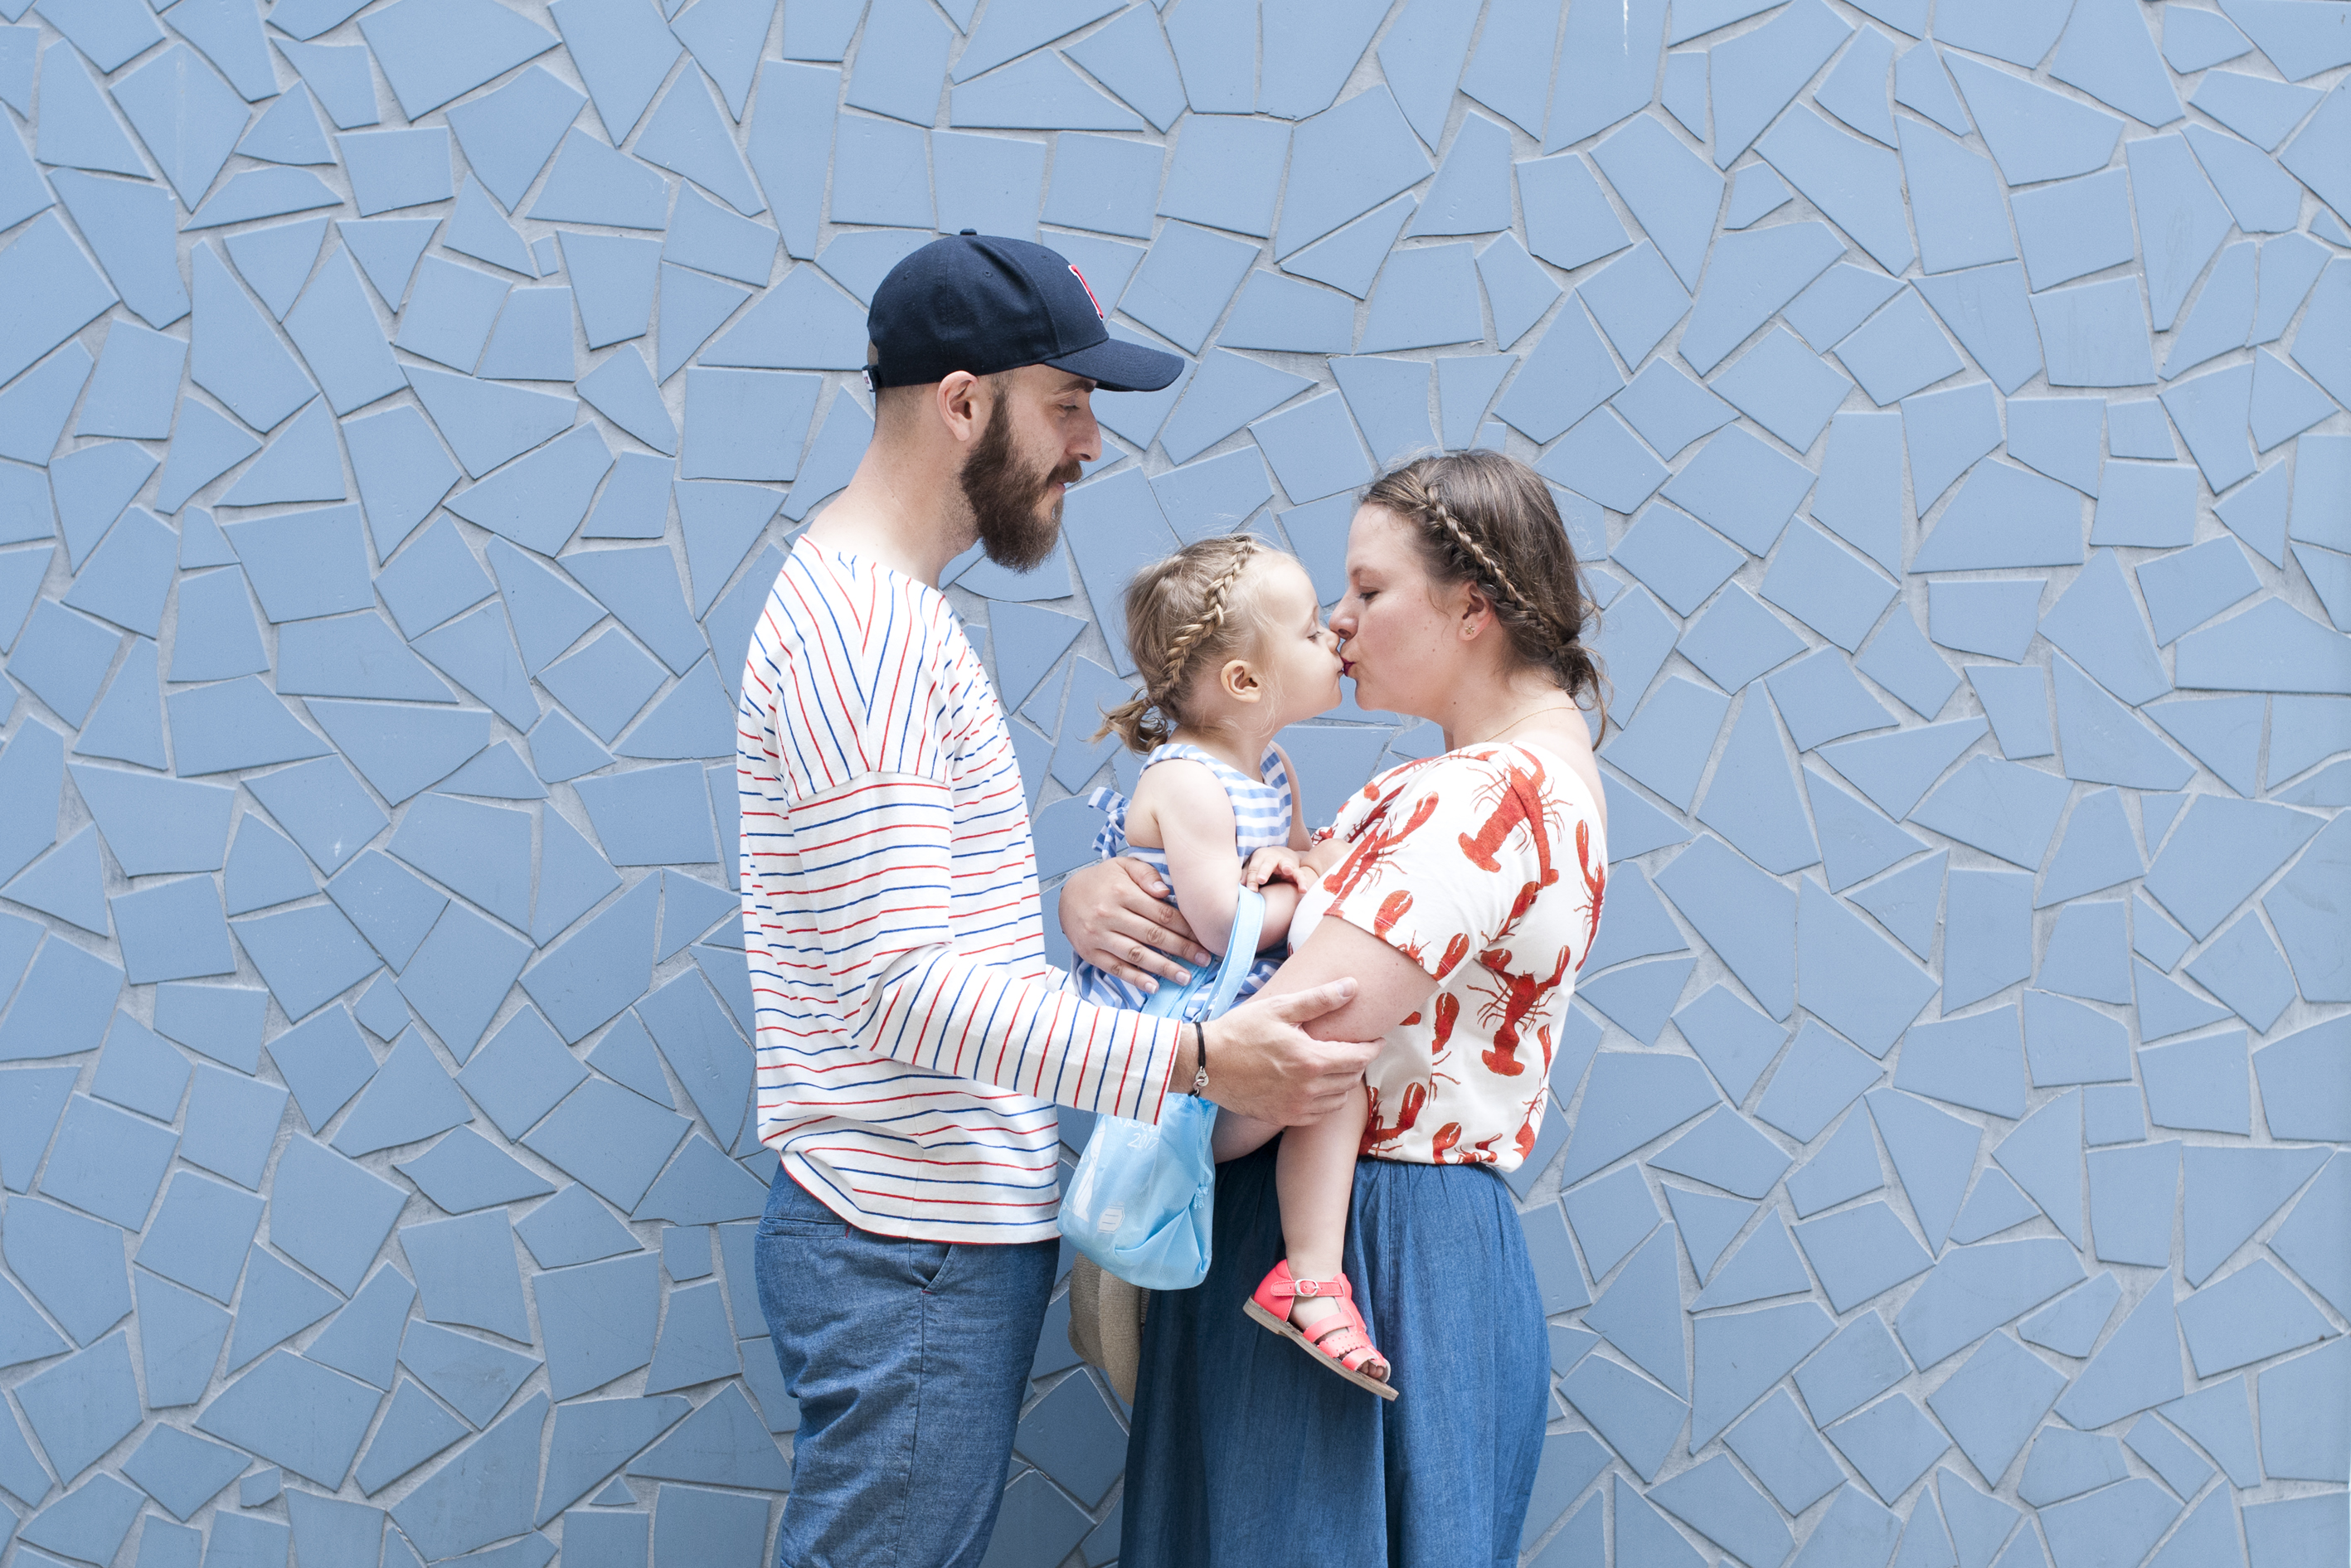 Streetstyle pour le blog Tiny Paw Paris, mode, famille, look, photographe